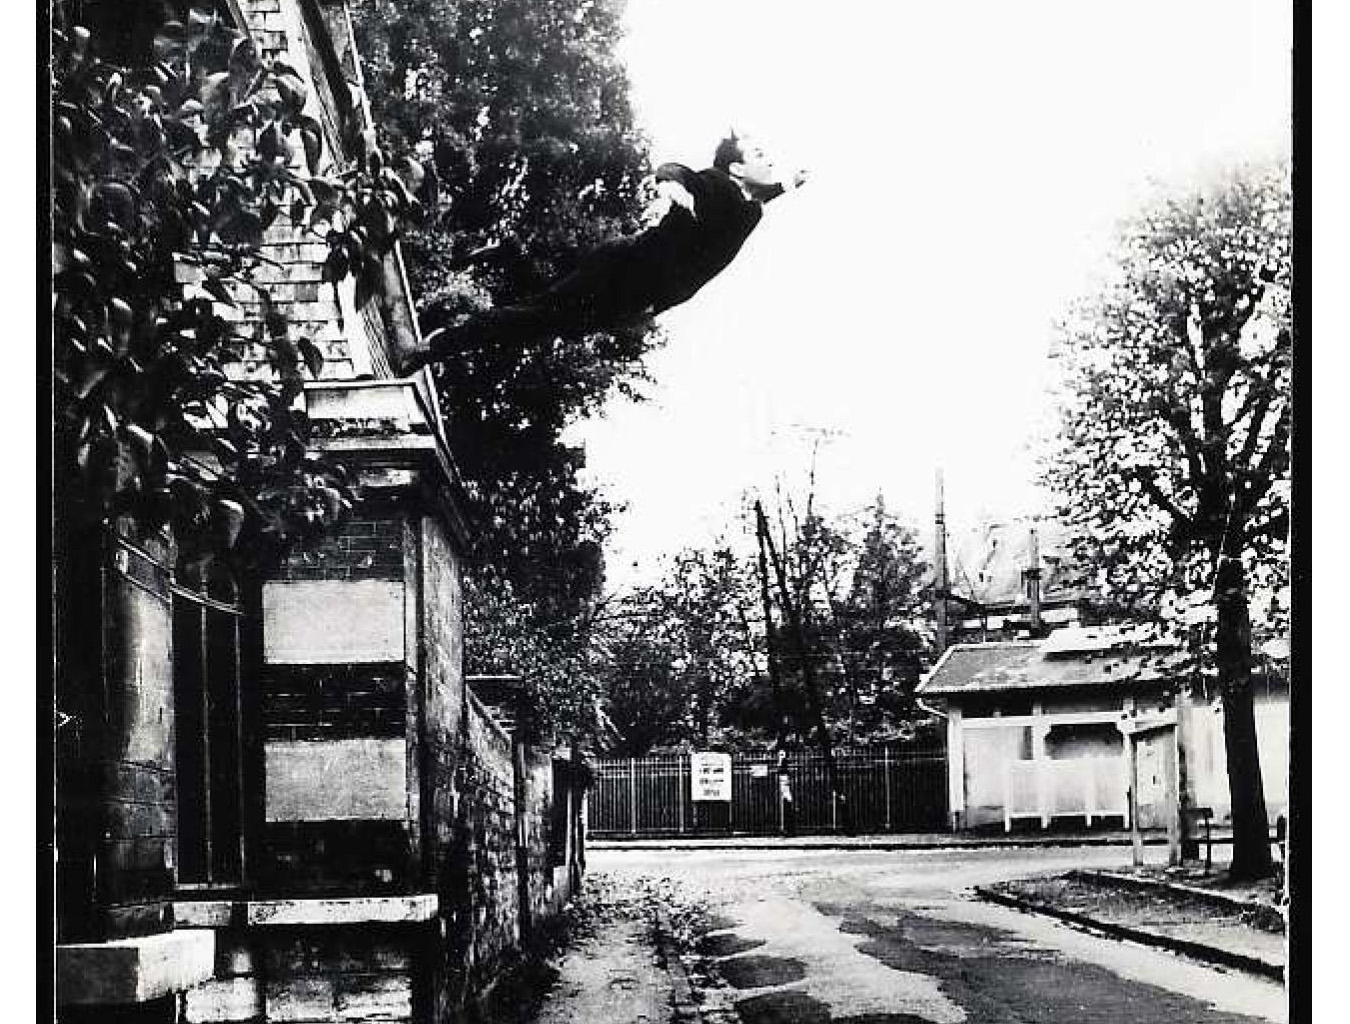 'An artist who can get away with this': The Press Response to Yves Klein's 1957 London Exhibition